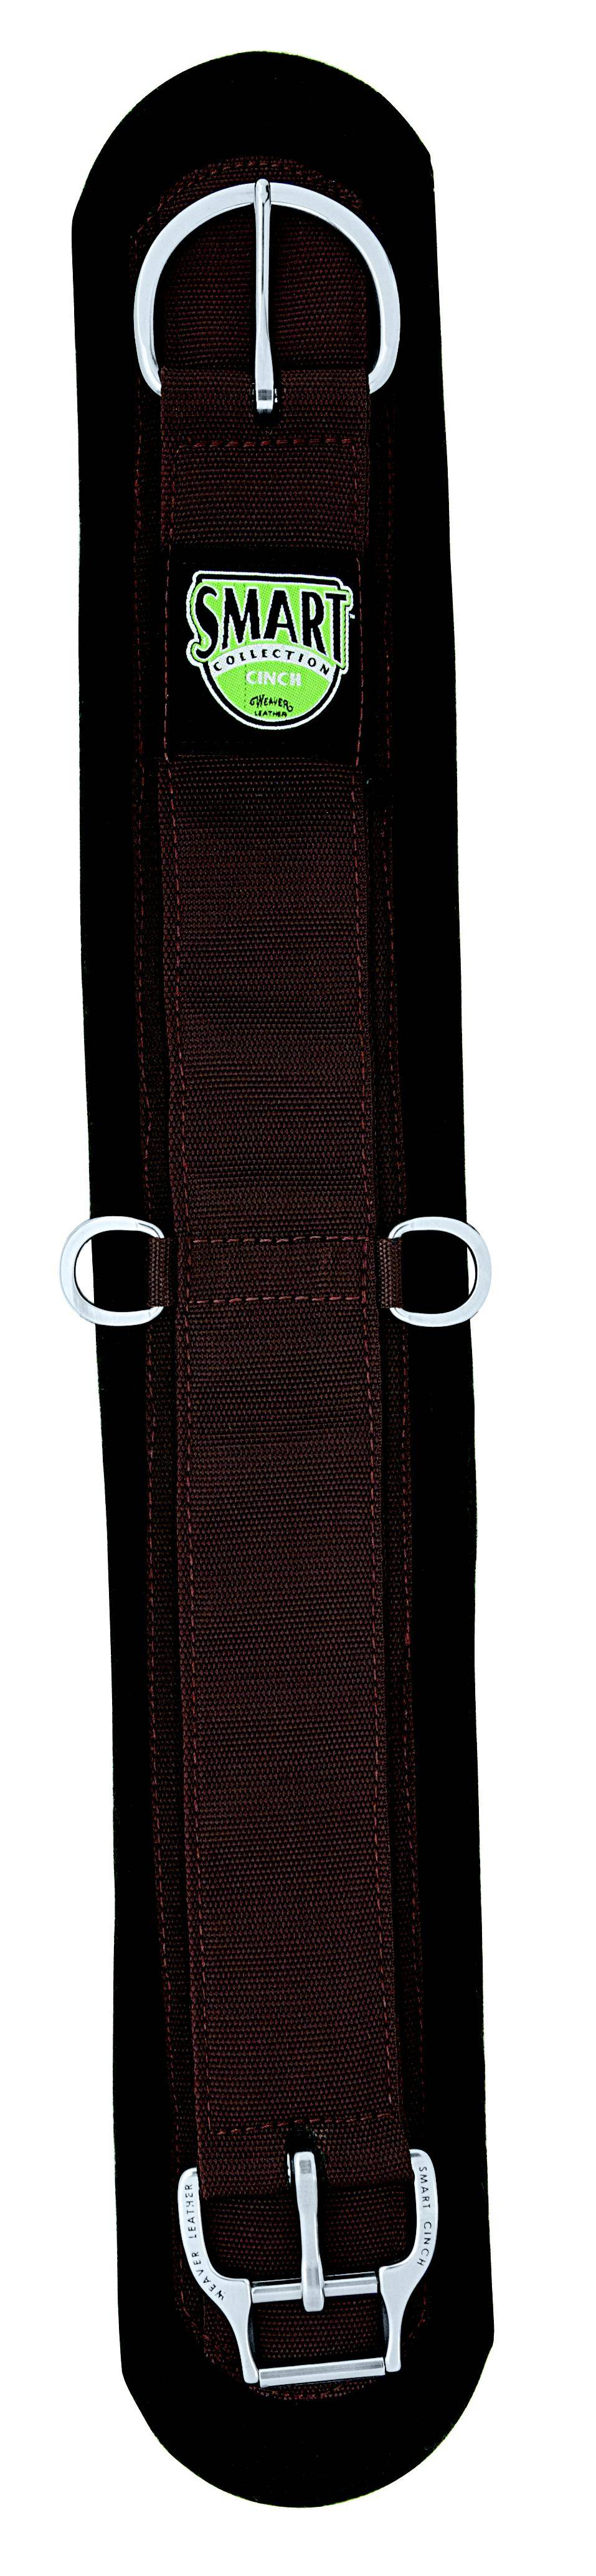 Weaver Leather Felt Lined Straight Smart Cinch